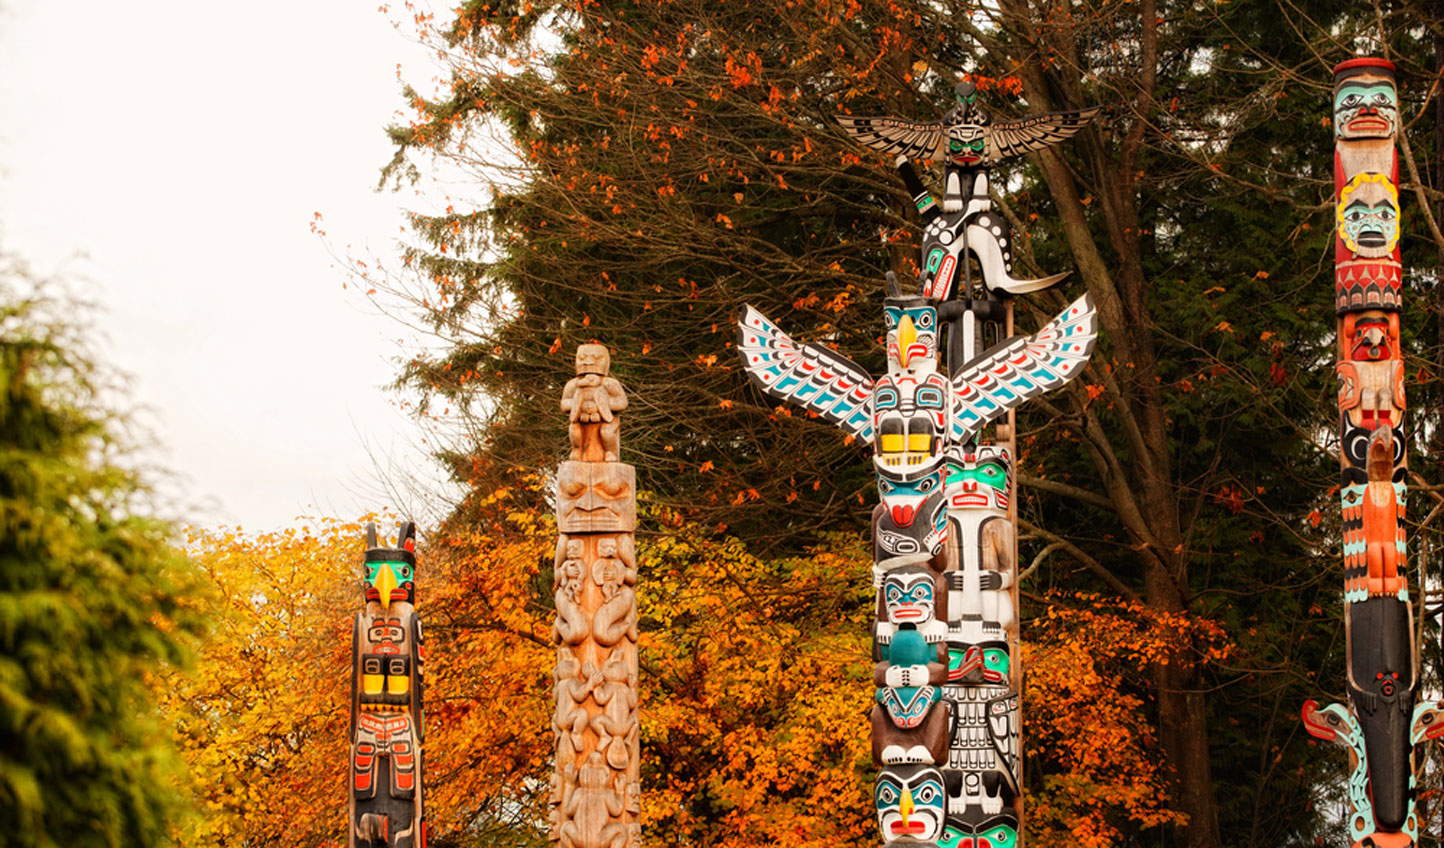 Immerse yourself in First Nations culture